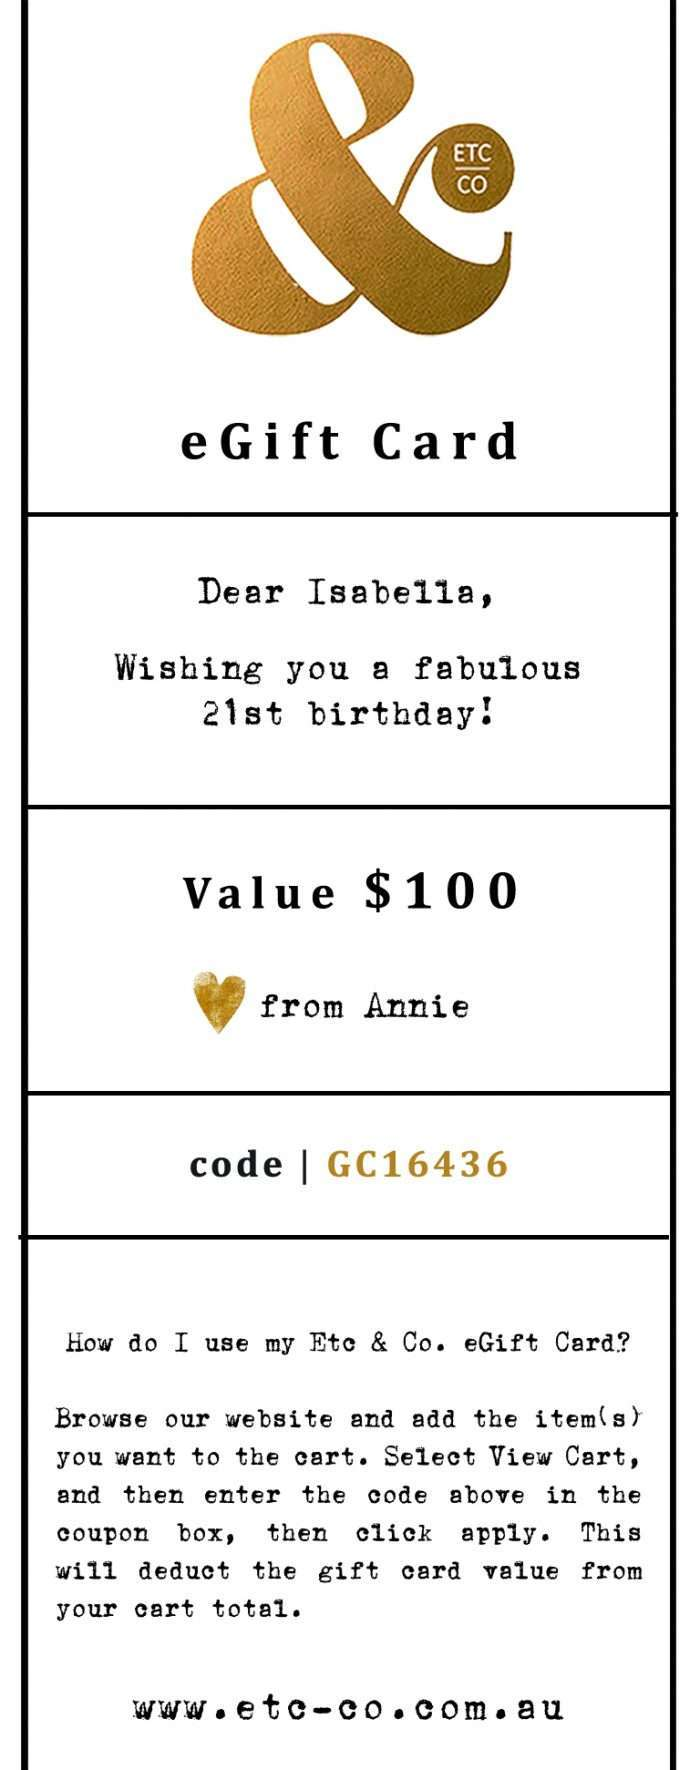 EGIFT CARD SAMPLE - $100